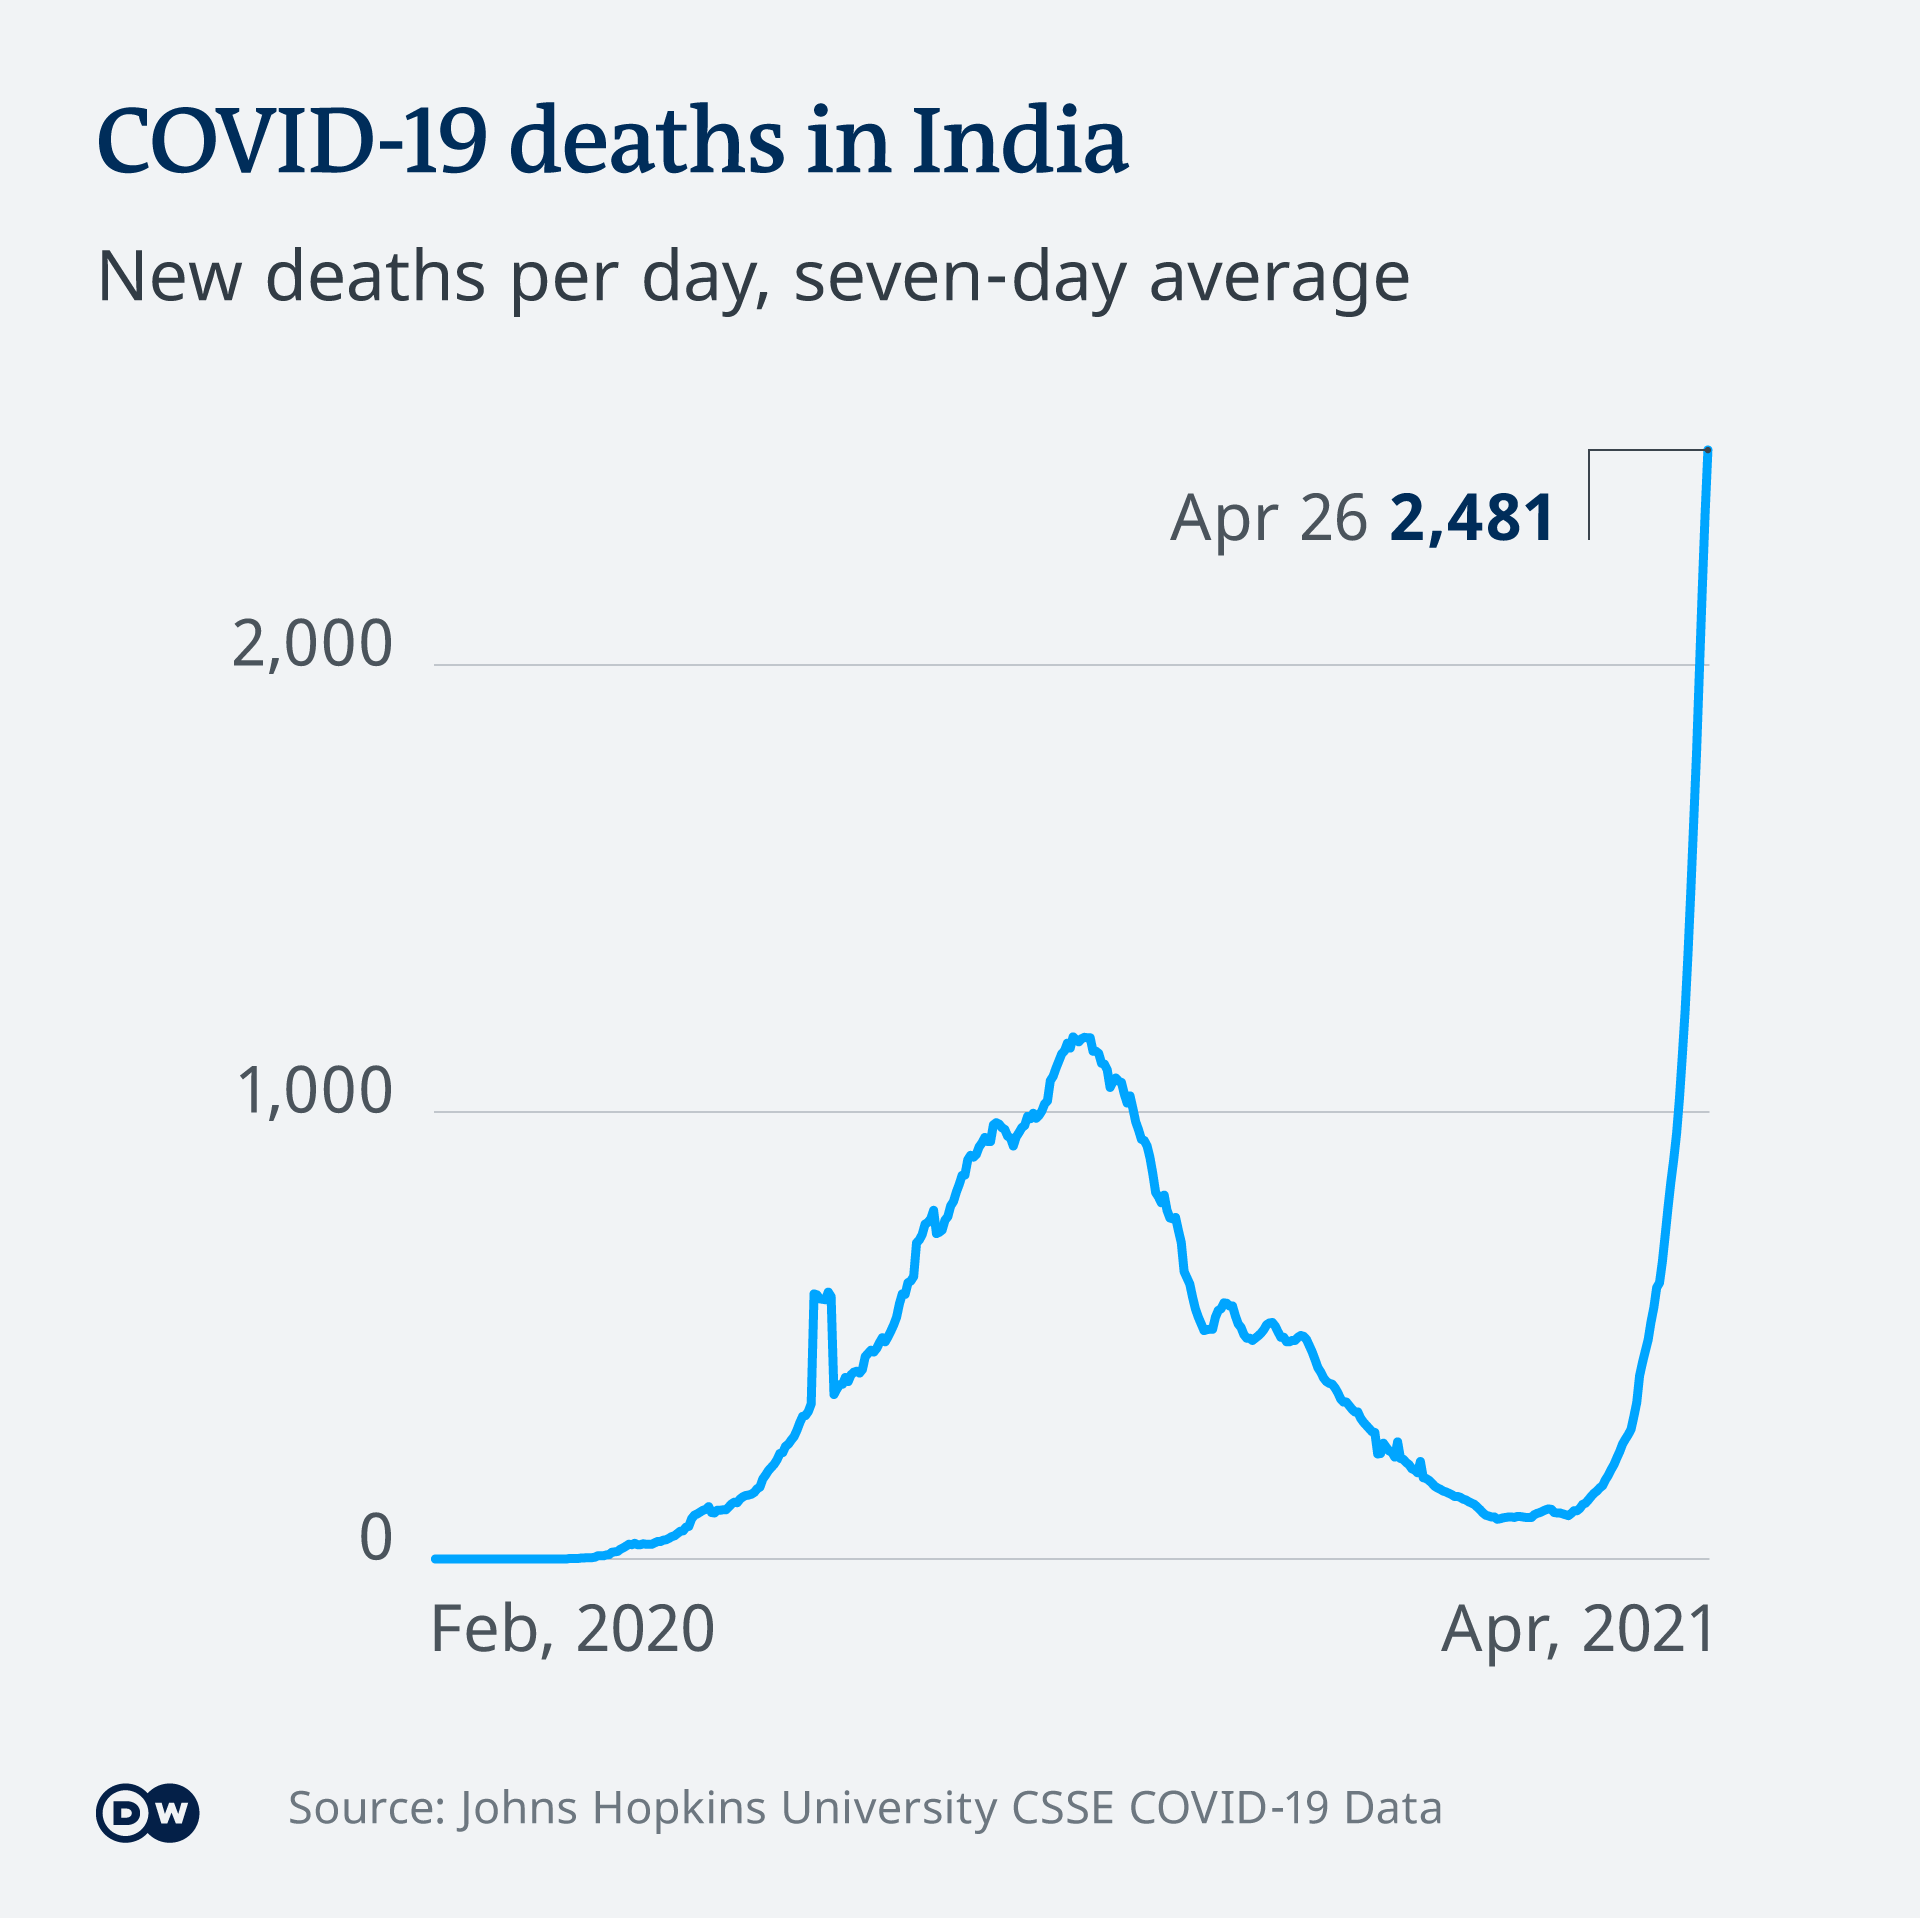 COVID deaths in India